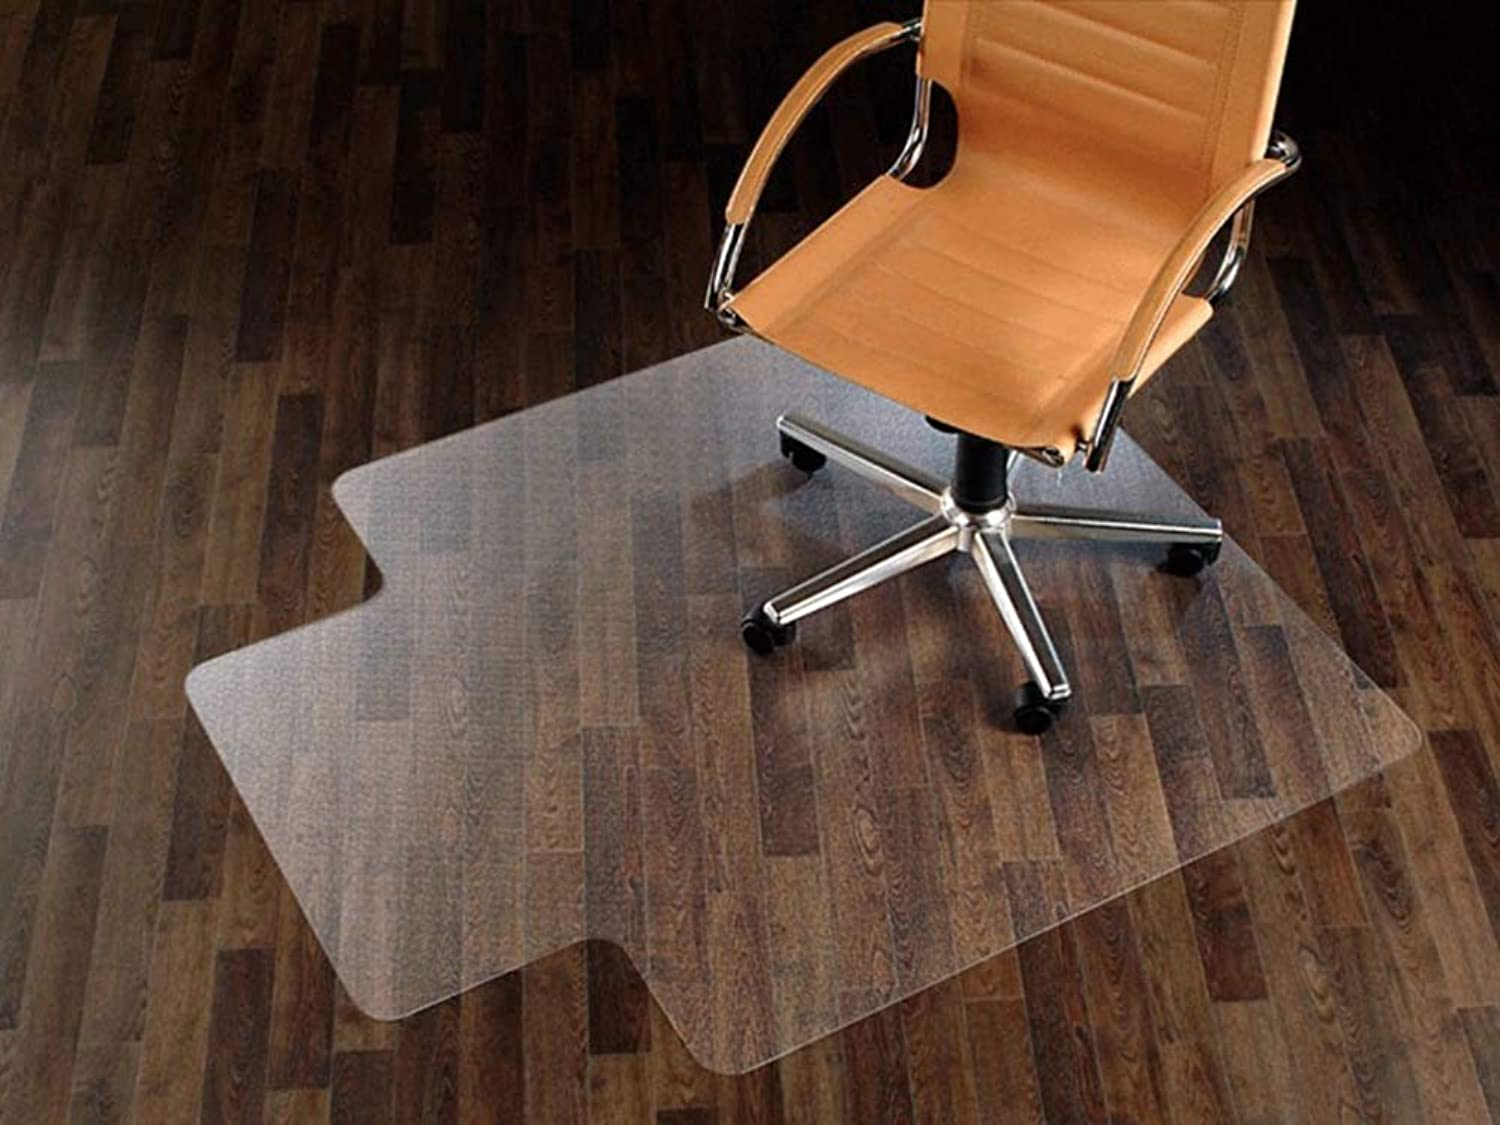 Office Chair mat for Hardwood Floor,Office Floor Predection Plastic Mat and Lip, Clear PVC Plastic,Suitable for Carpet and Floor Predect(35 x47 )